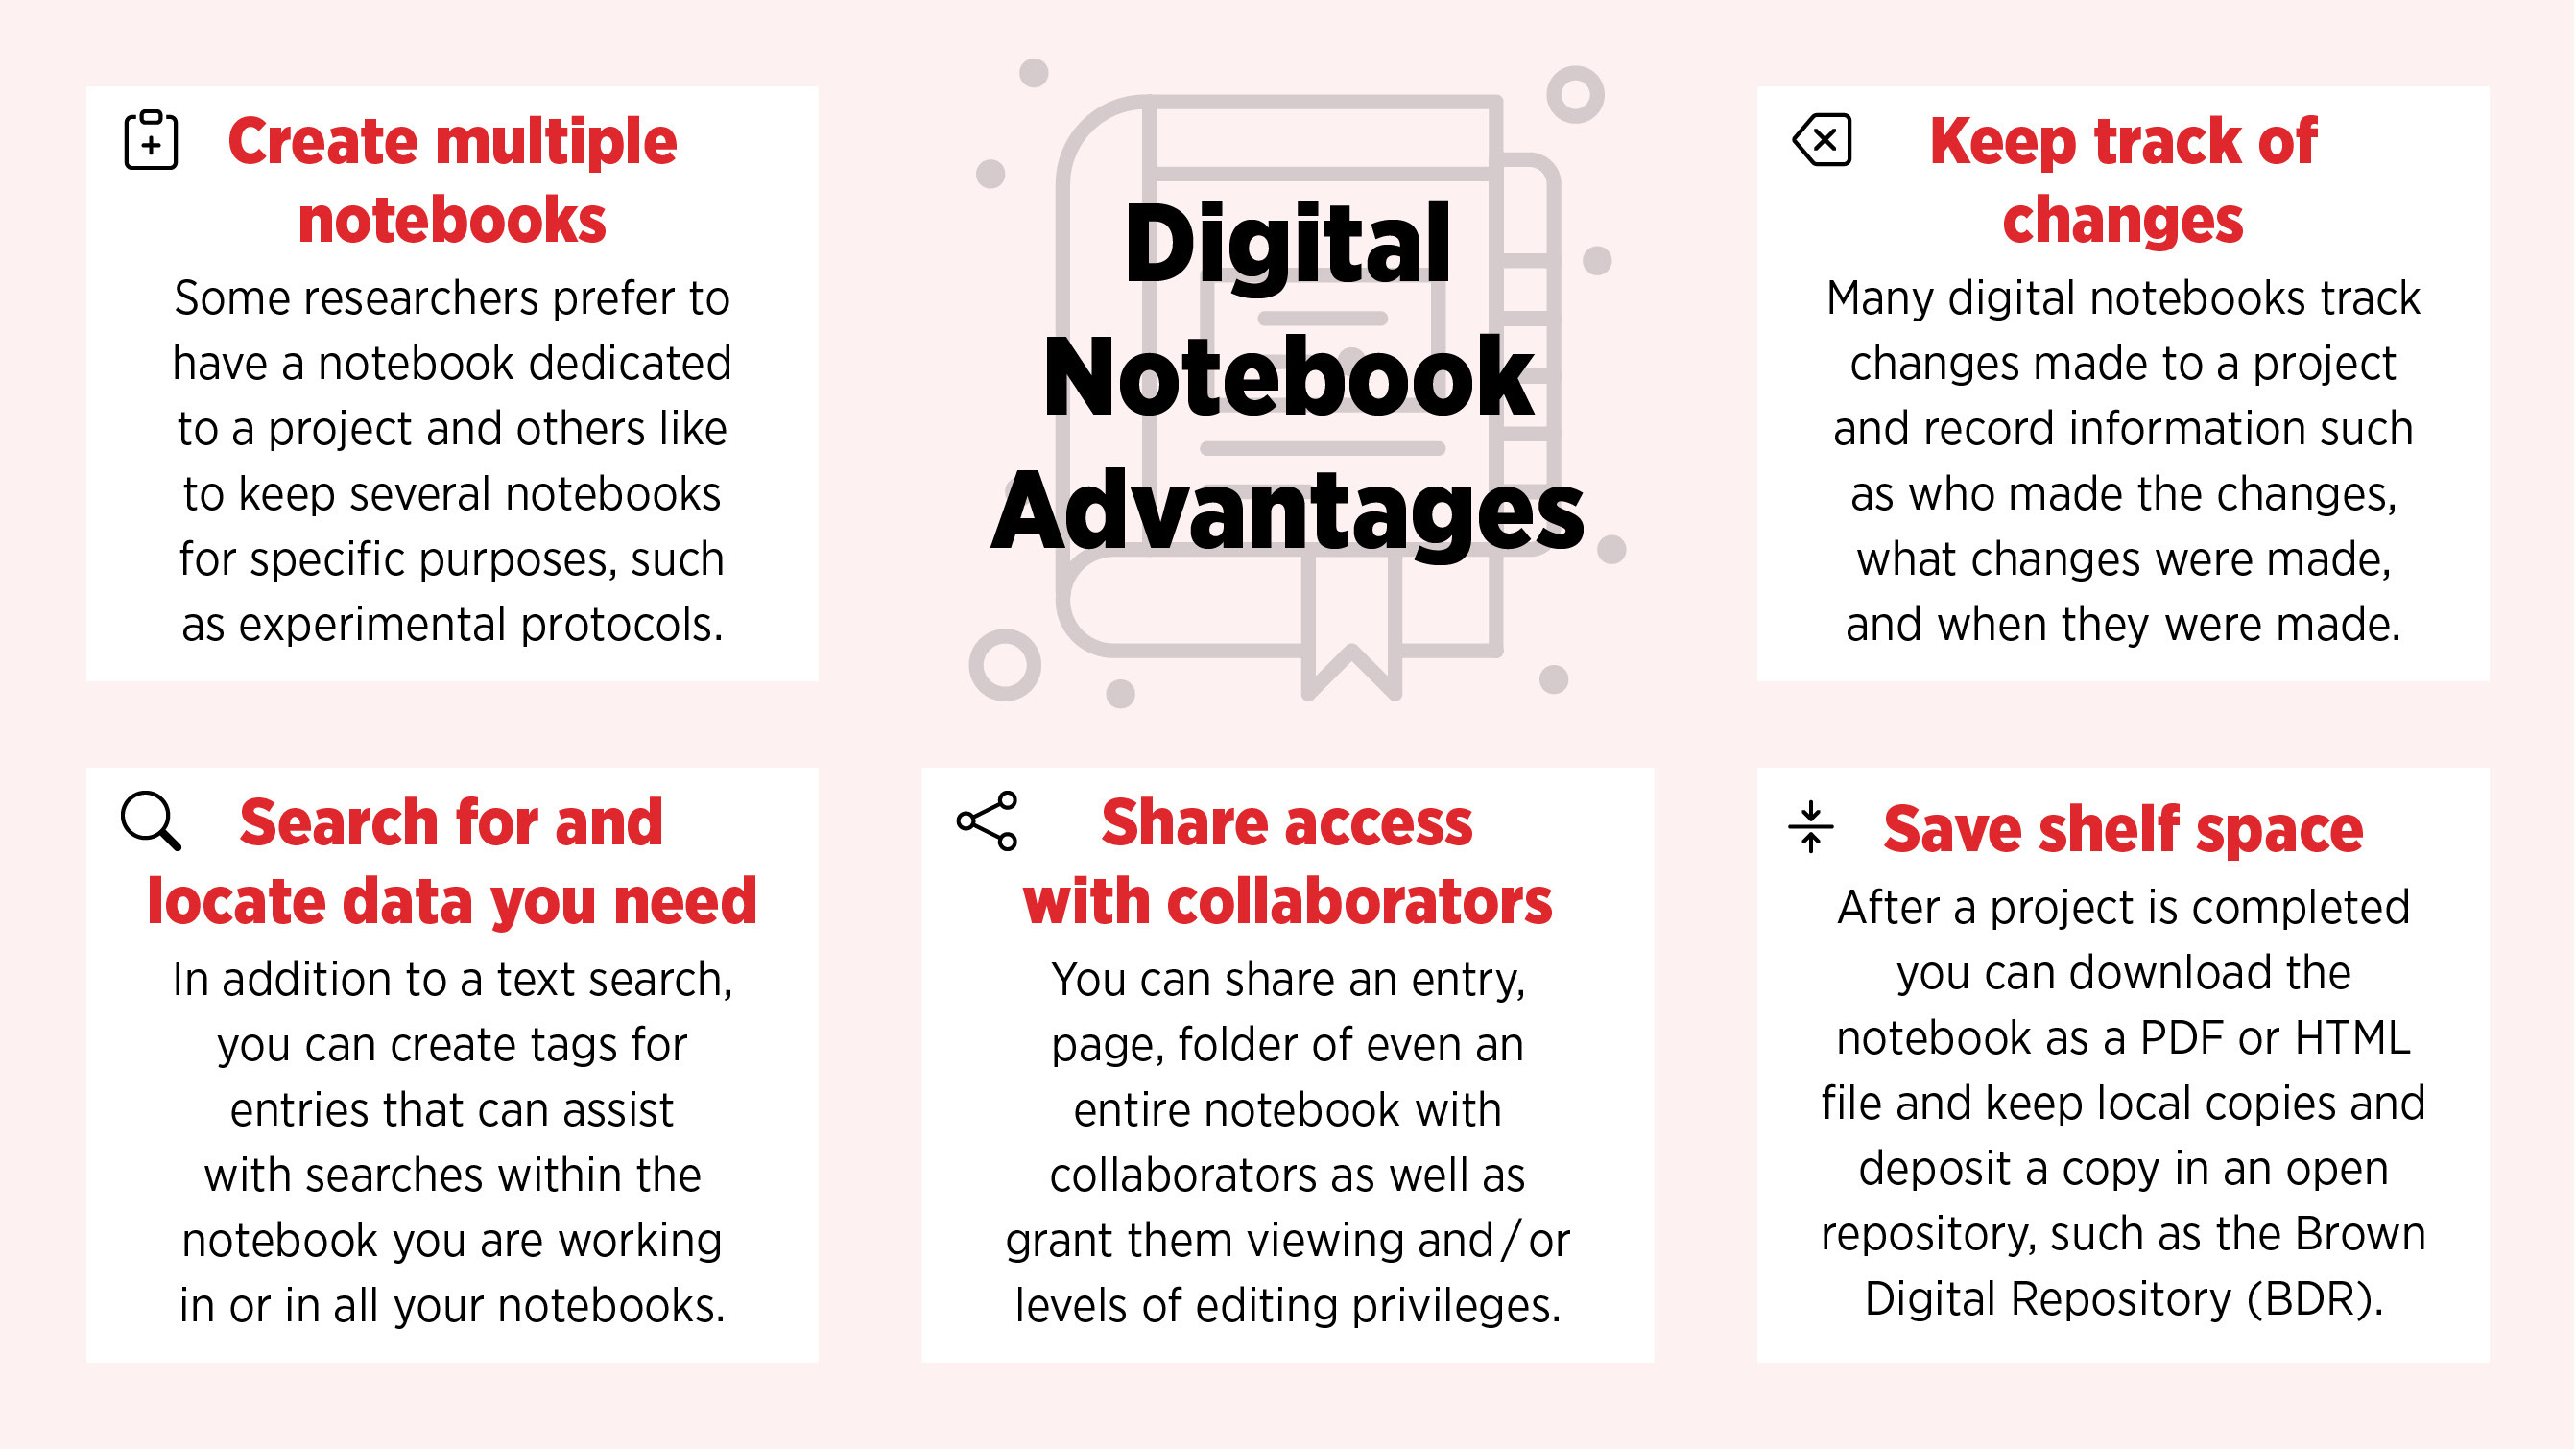 List of Advantages of Using a Digital Notebook